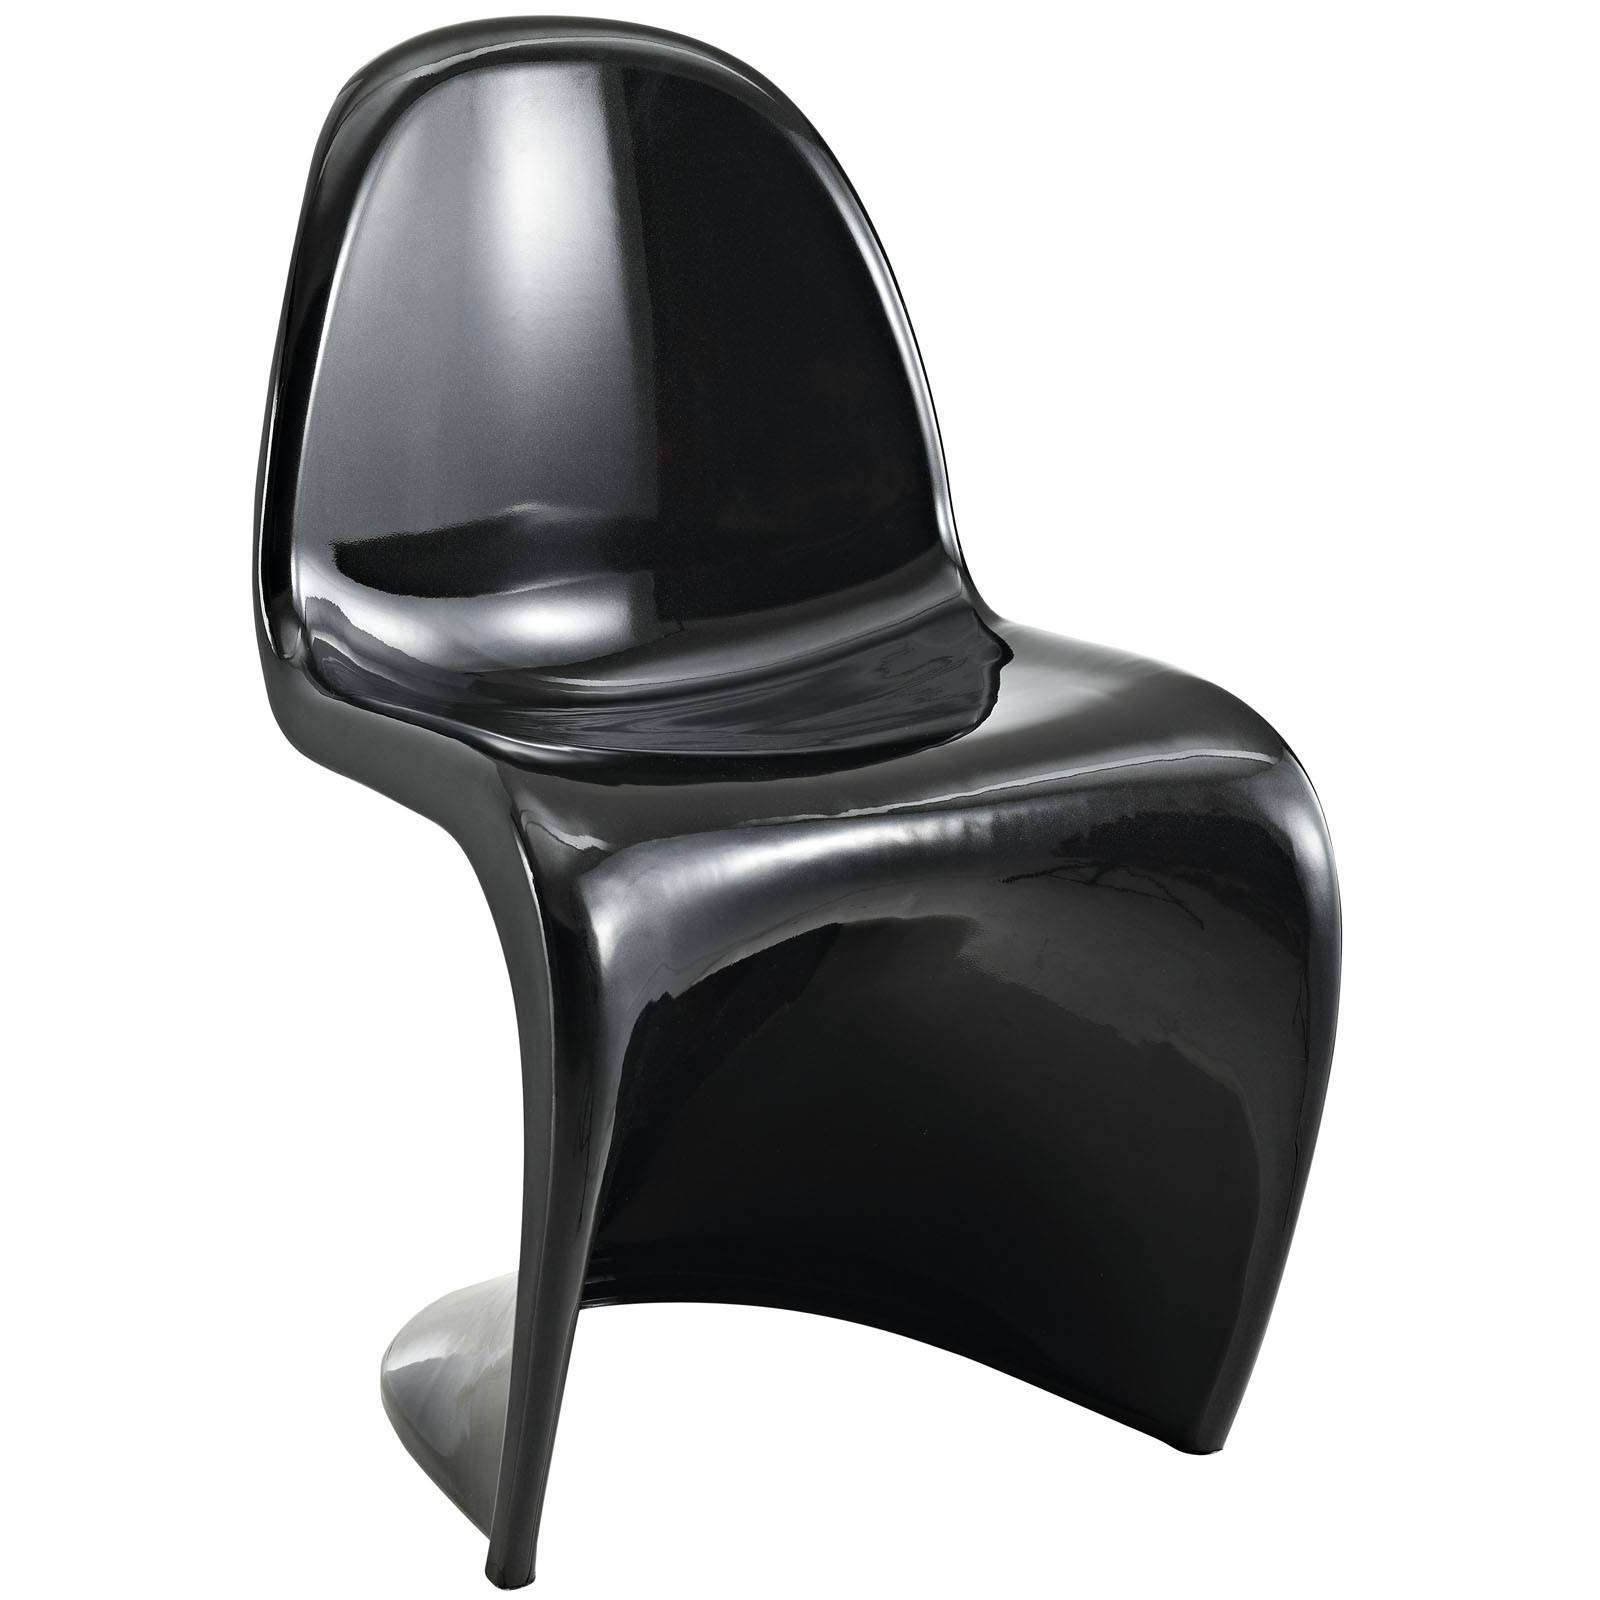 verner panton style chair. Black Bedroom Furniture Sets. Home Design Ideas